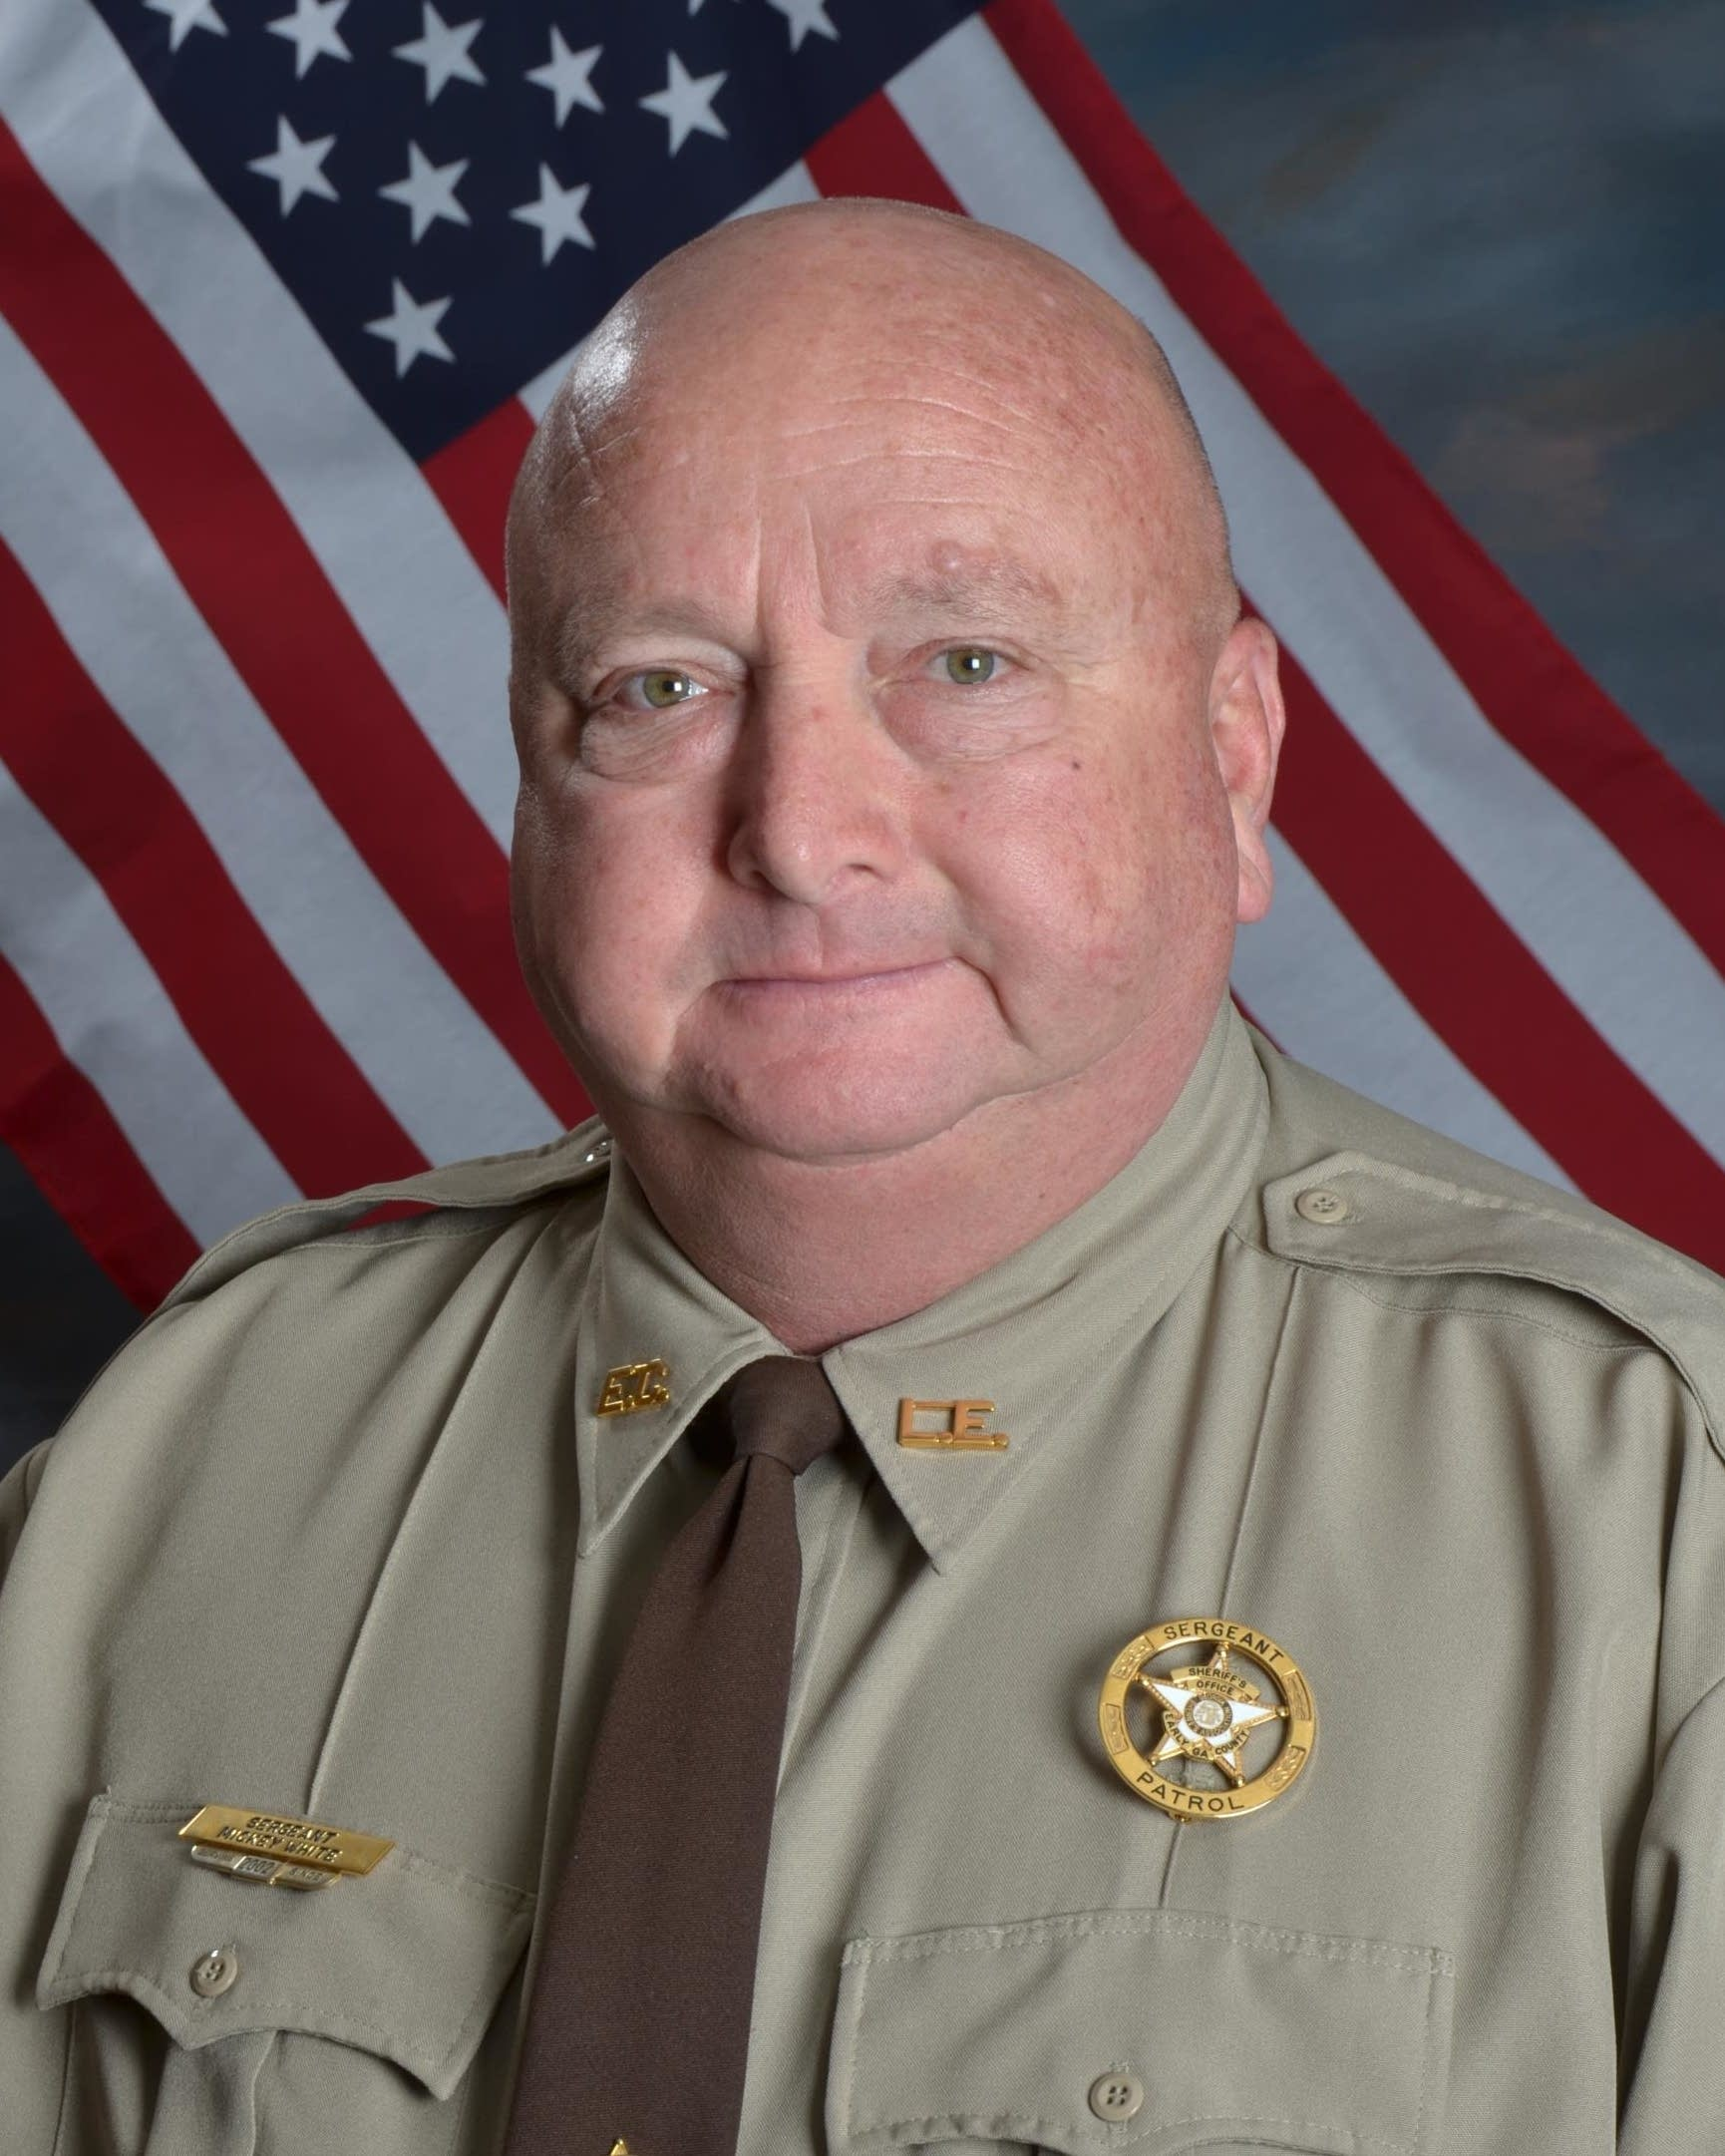 Sgt. Mickey White